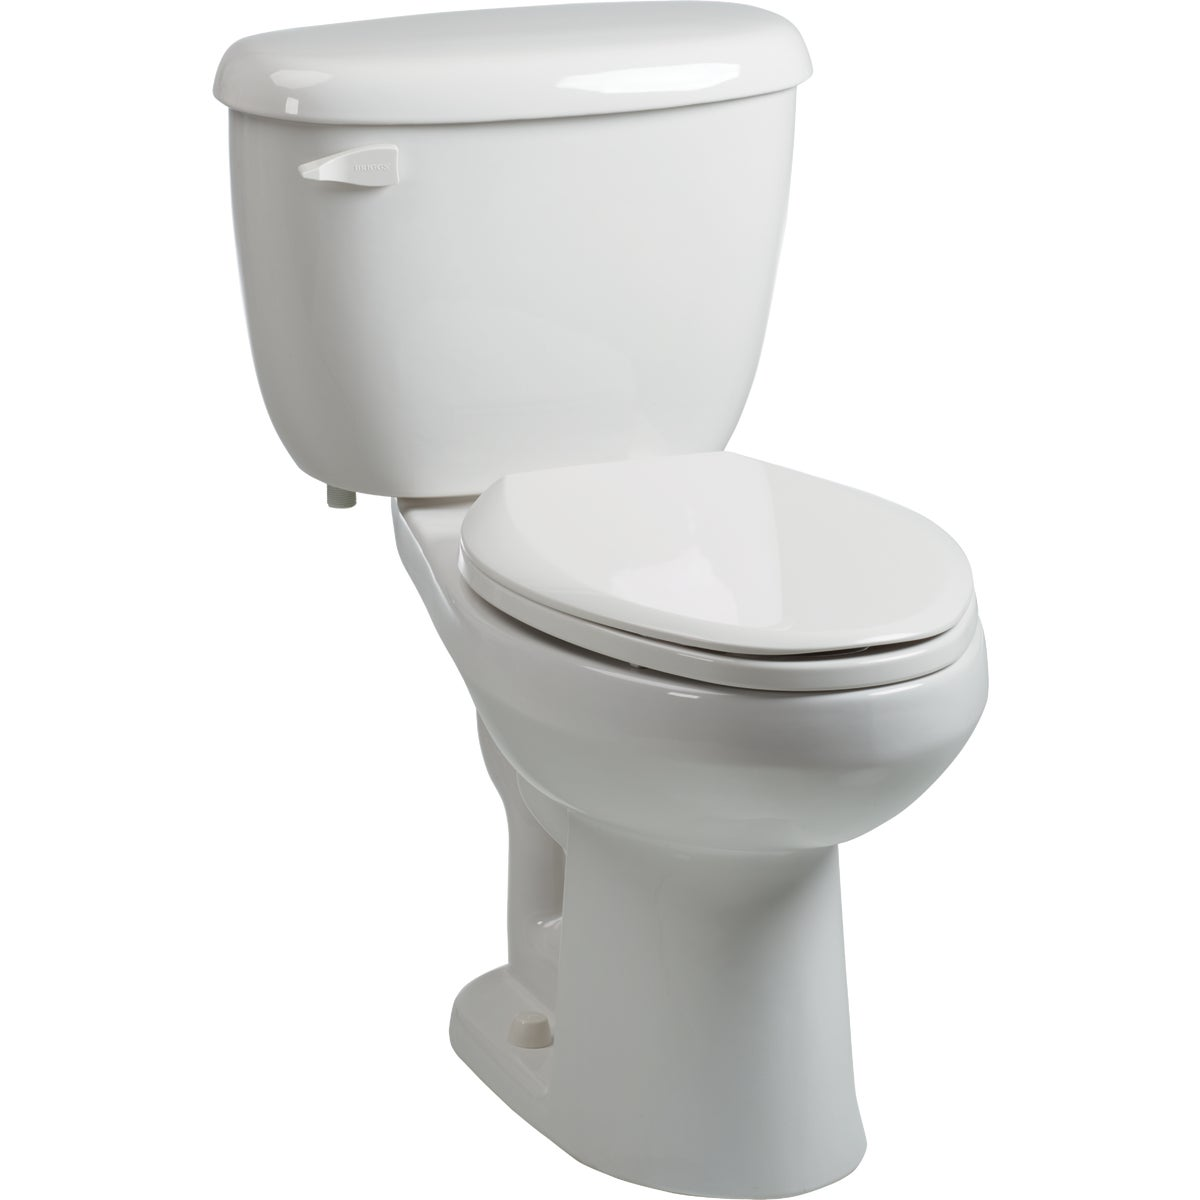 WHT ADA TOILET EXPRESS - 7008-130 by BRIGSS - IMPORTS